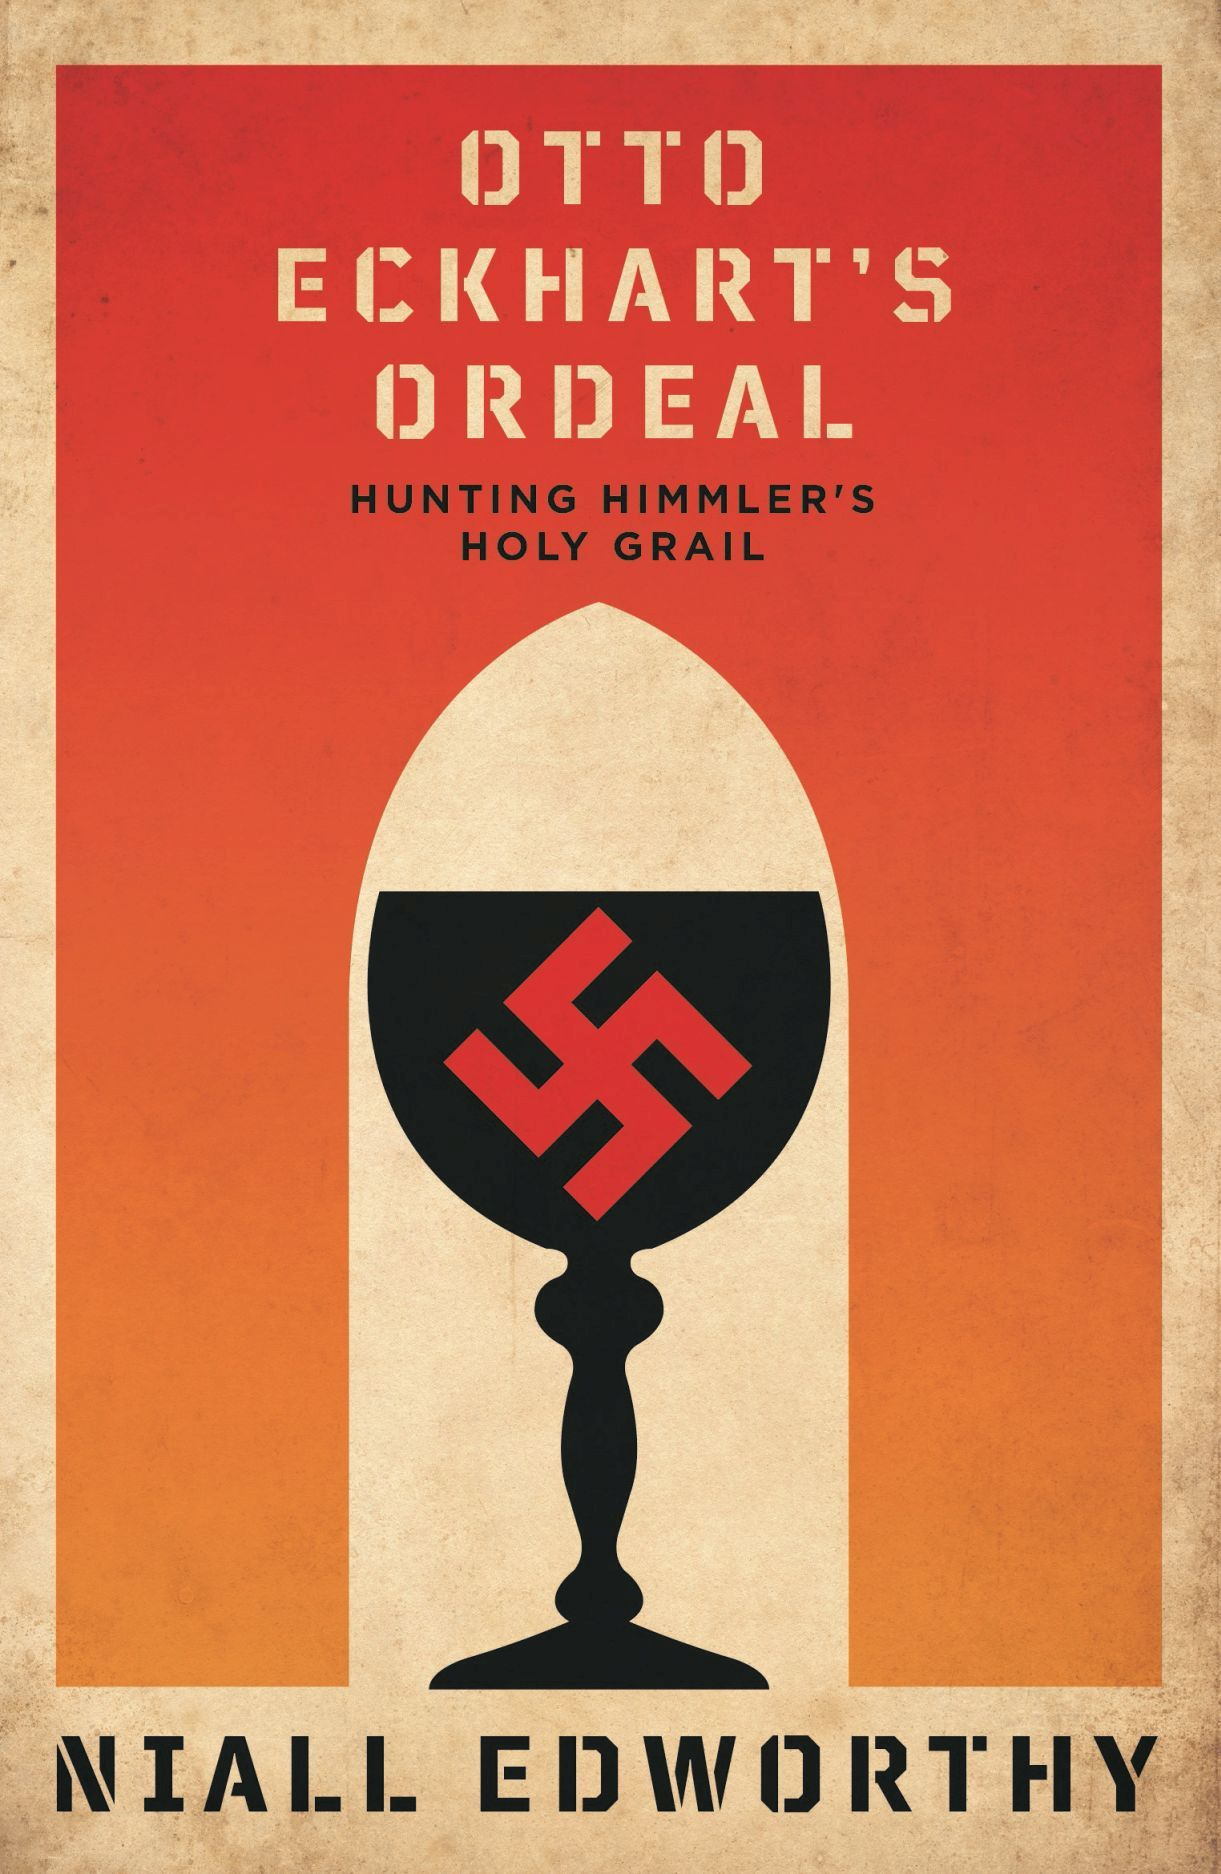 Otto Eckhart's Ordeal: Hunting Himmler's Holy Chalice